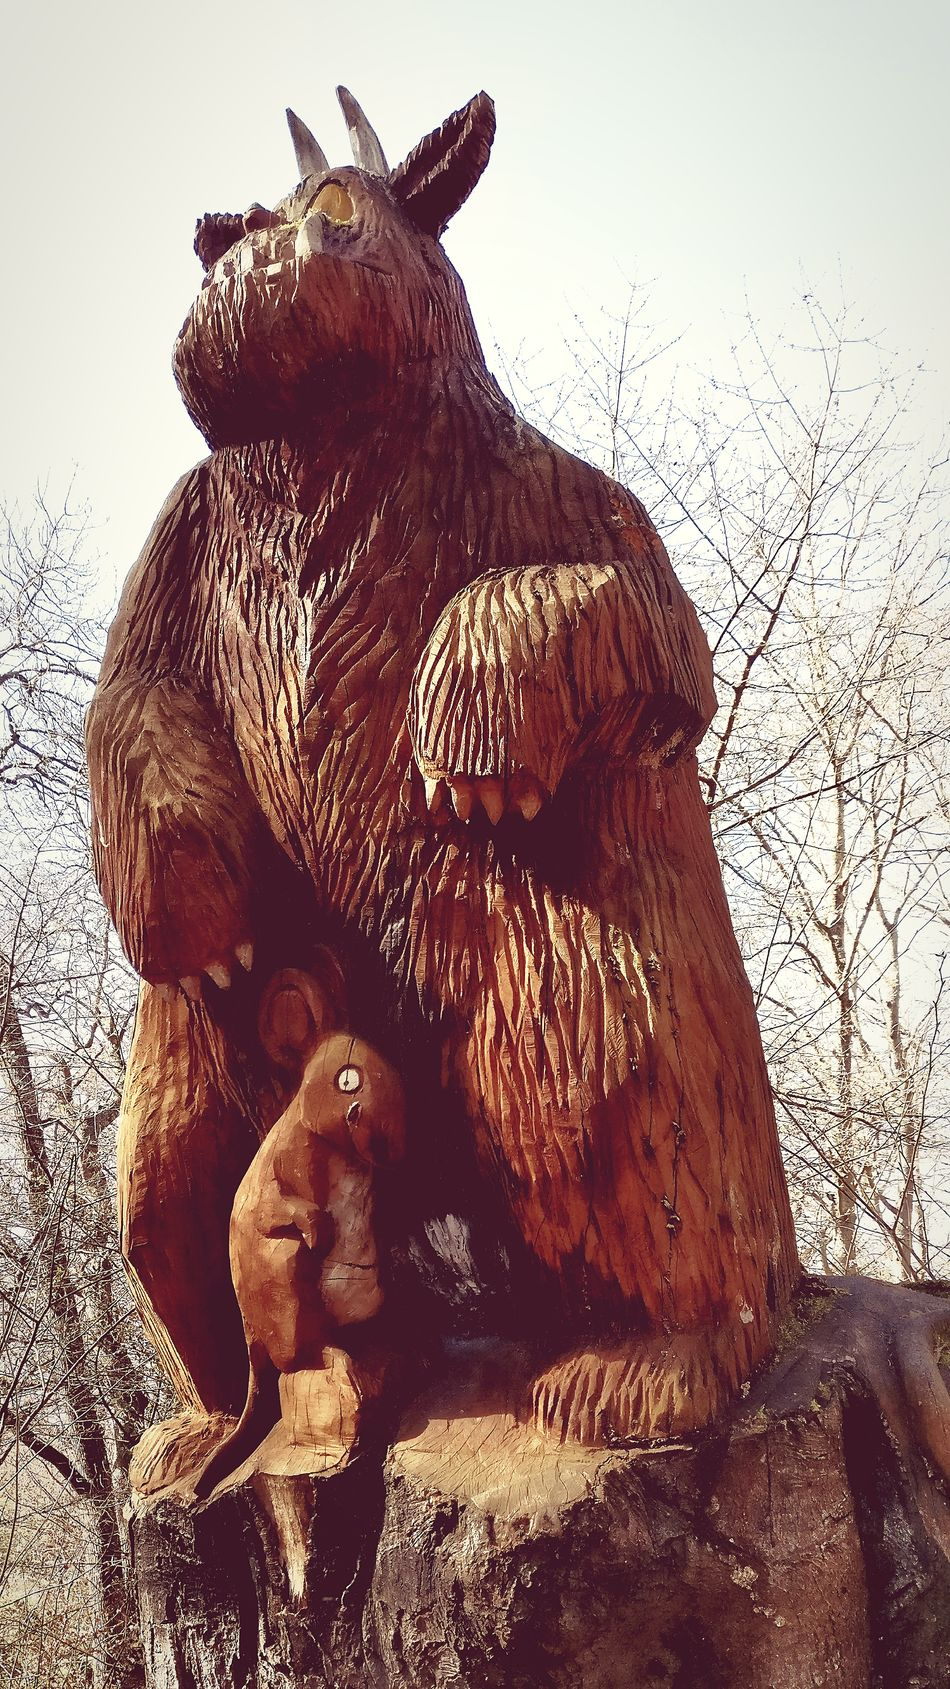 Animal Themes Statue Day No People Outdoors Scotland Scottish Highlands Culloden Wood Carving Art Wood Carving Animals In The Wild Mammal Close-up Full Frame Scotlandsbeauty Scotland 💕 Scottish Highlands Gruffalo Gruffalo Hunt